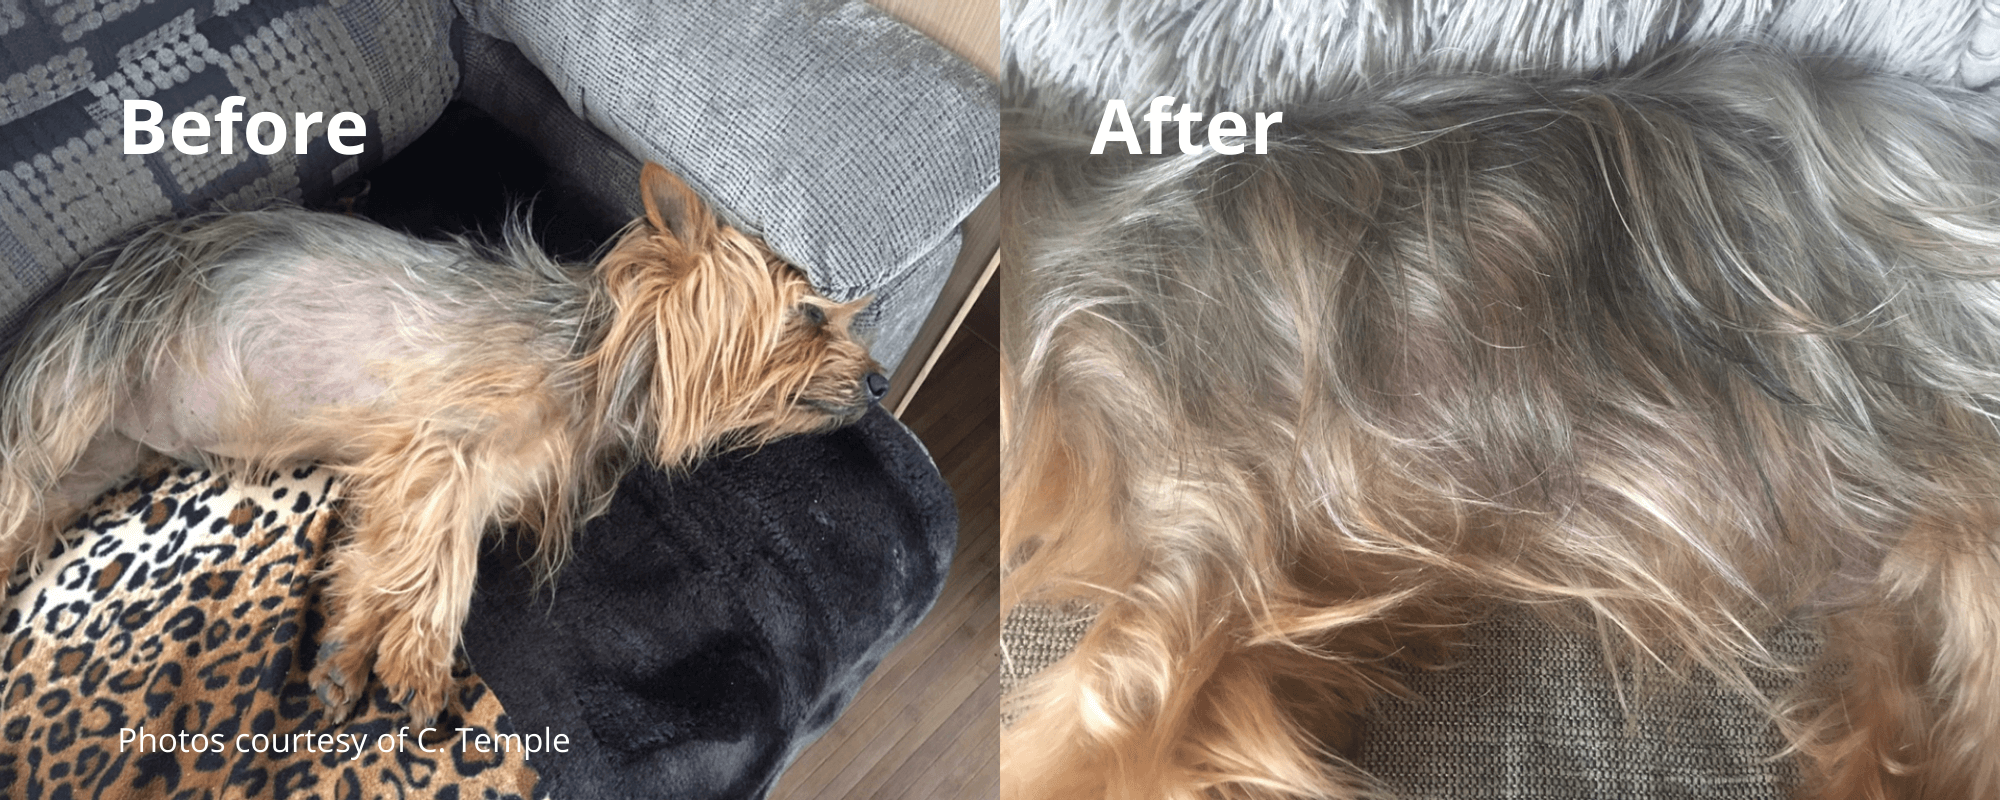 Trust in the results! Check out these before and after photos for Jack who's been using our Skin and Coat supplements.